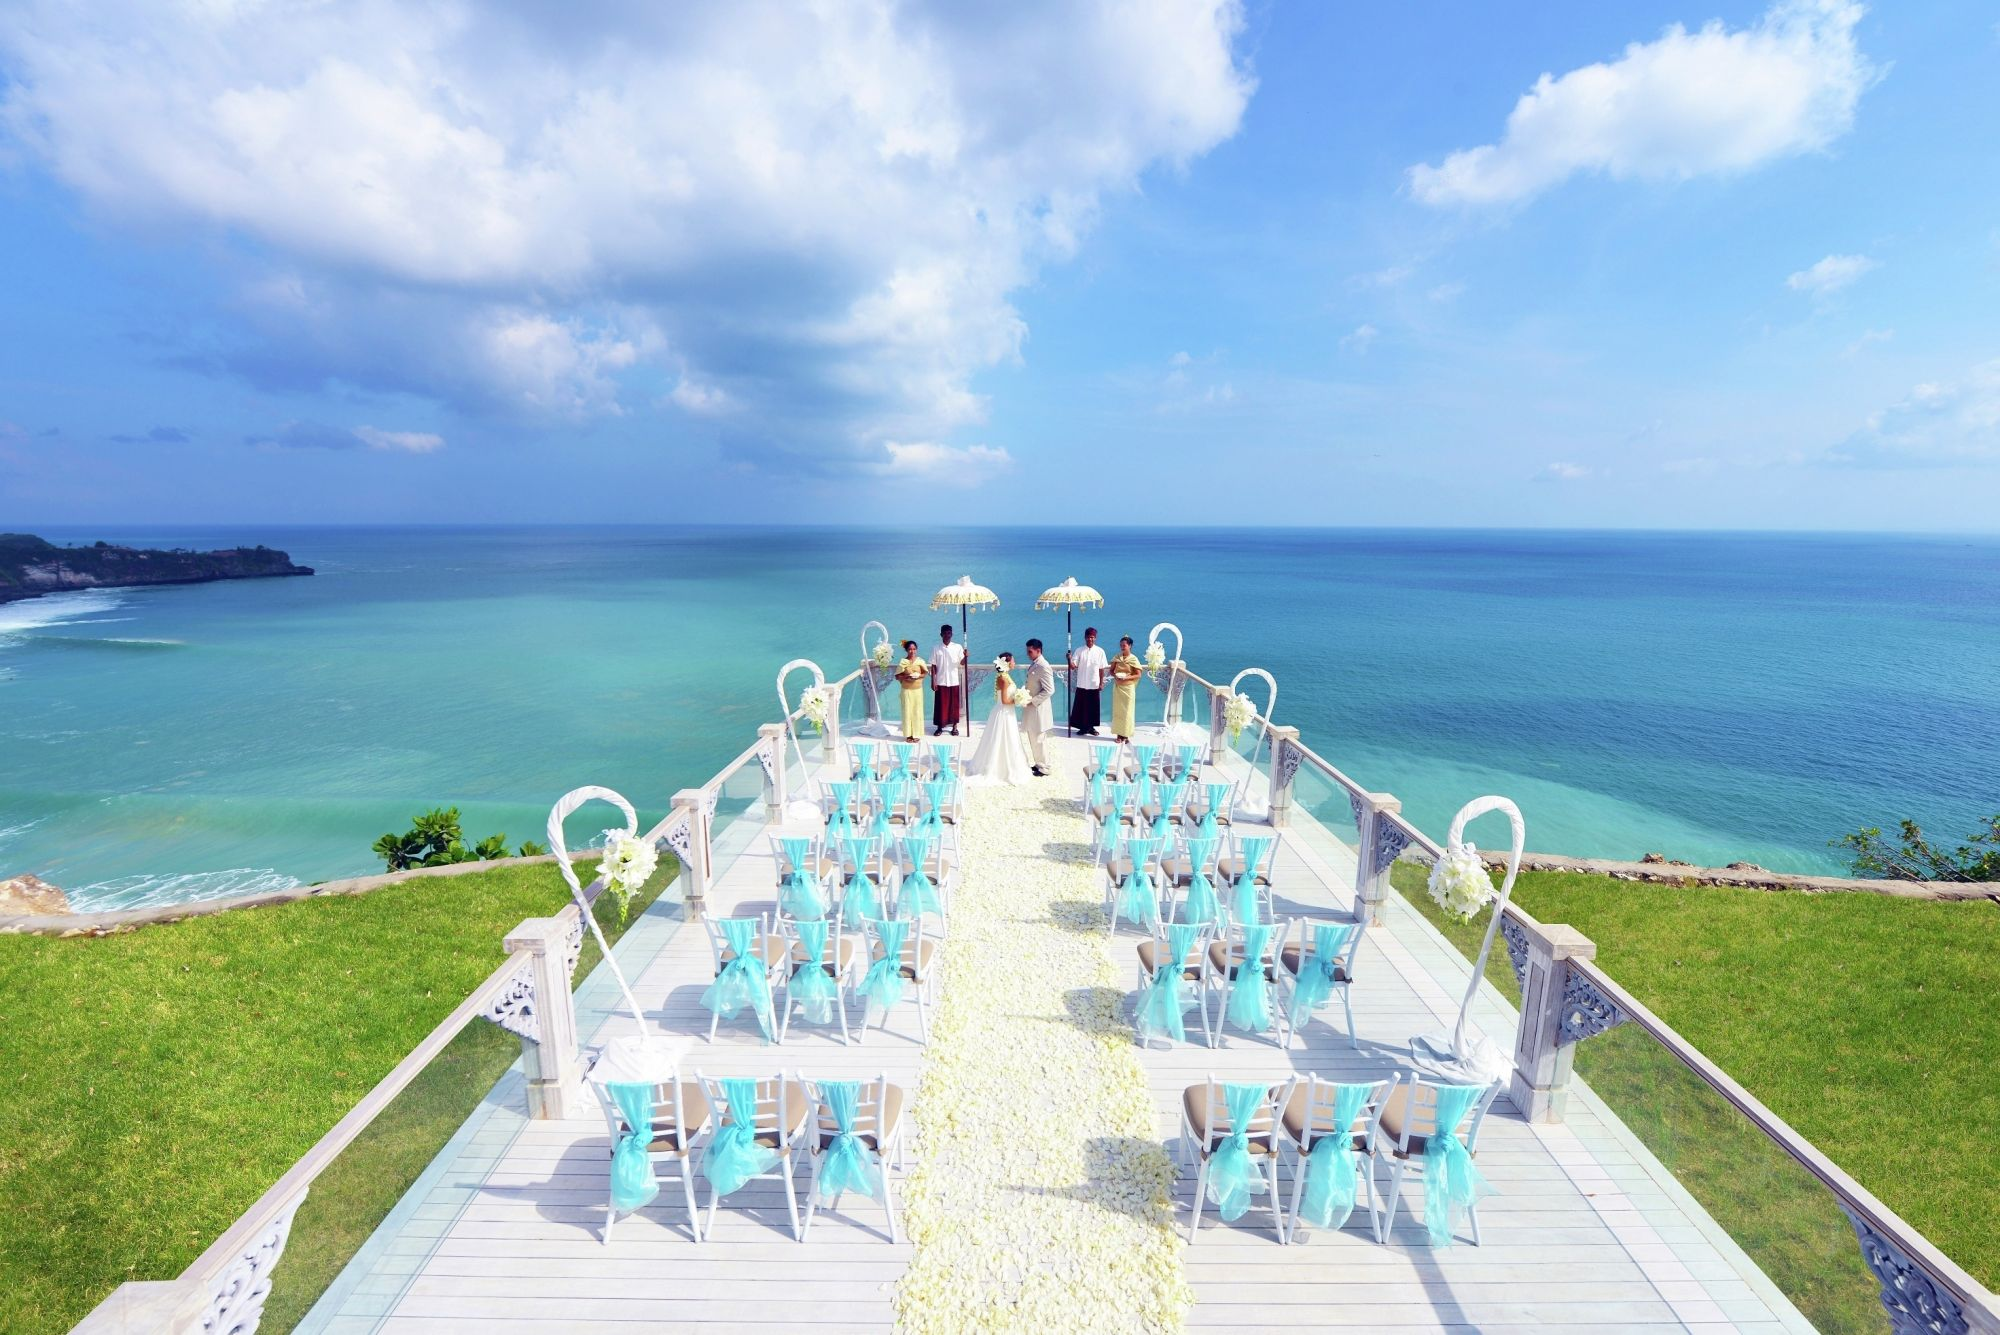 This Is The Most Instagram-Friendly Wedding Venue In The World